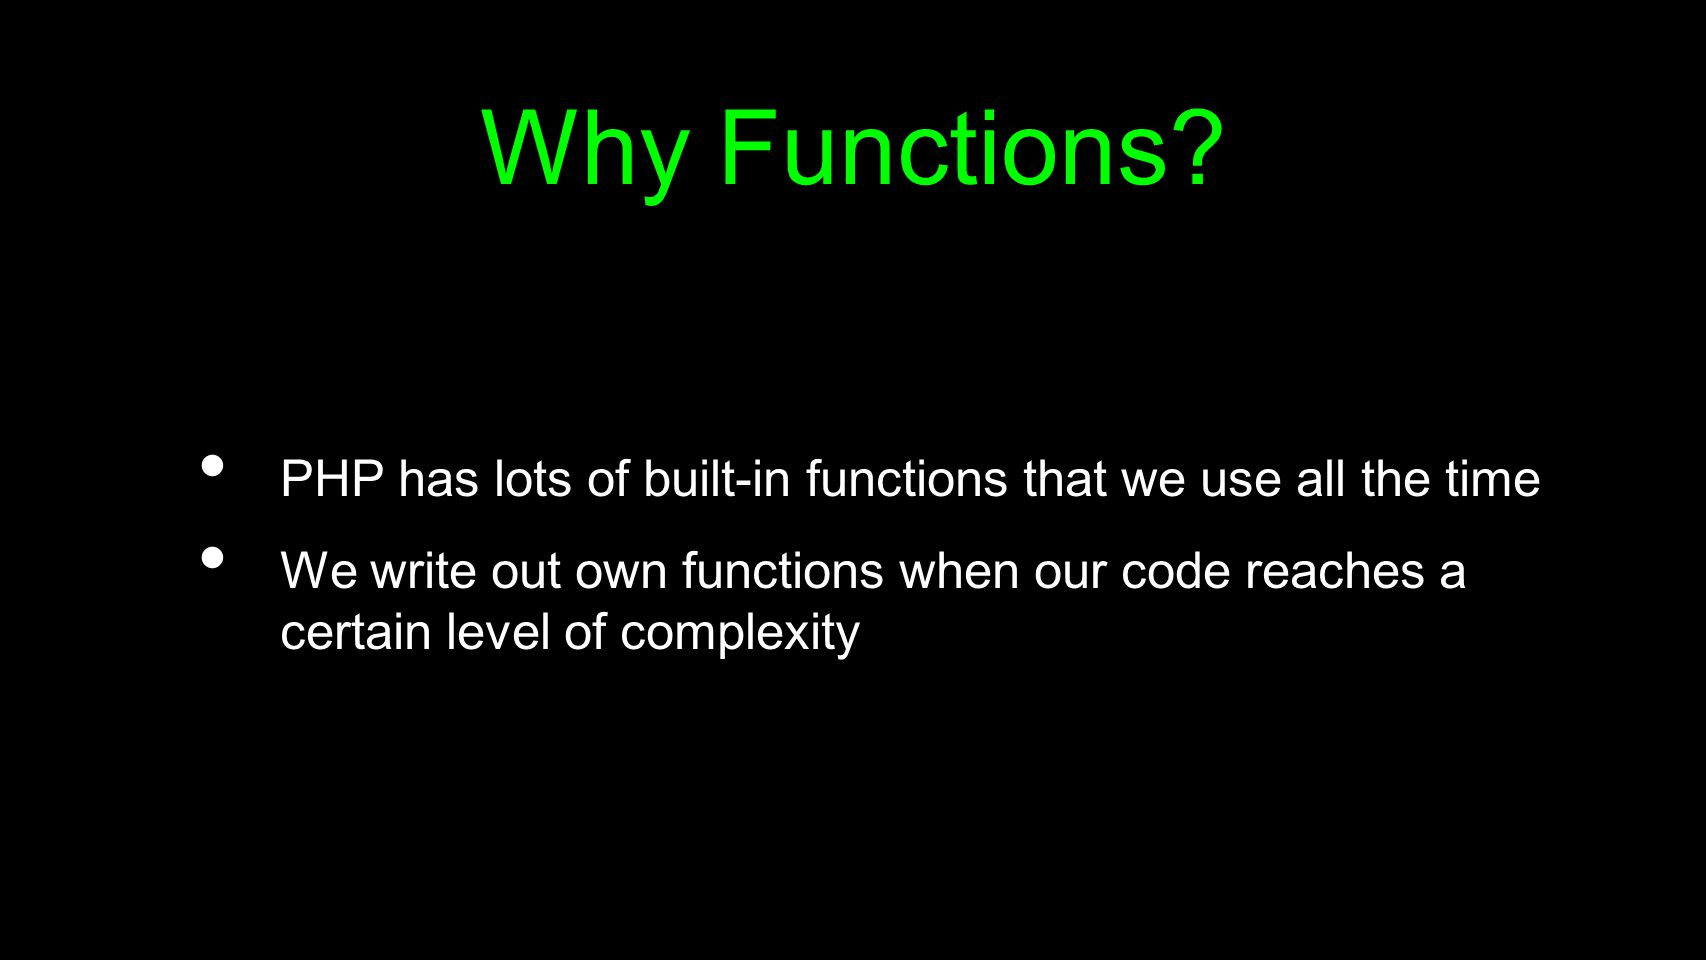 To function or not to function...